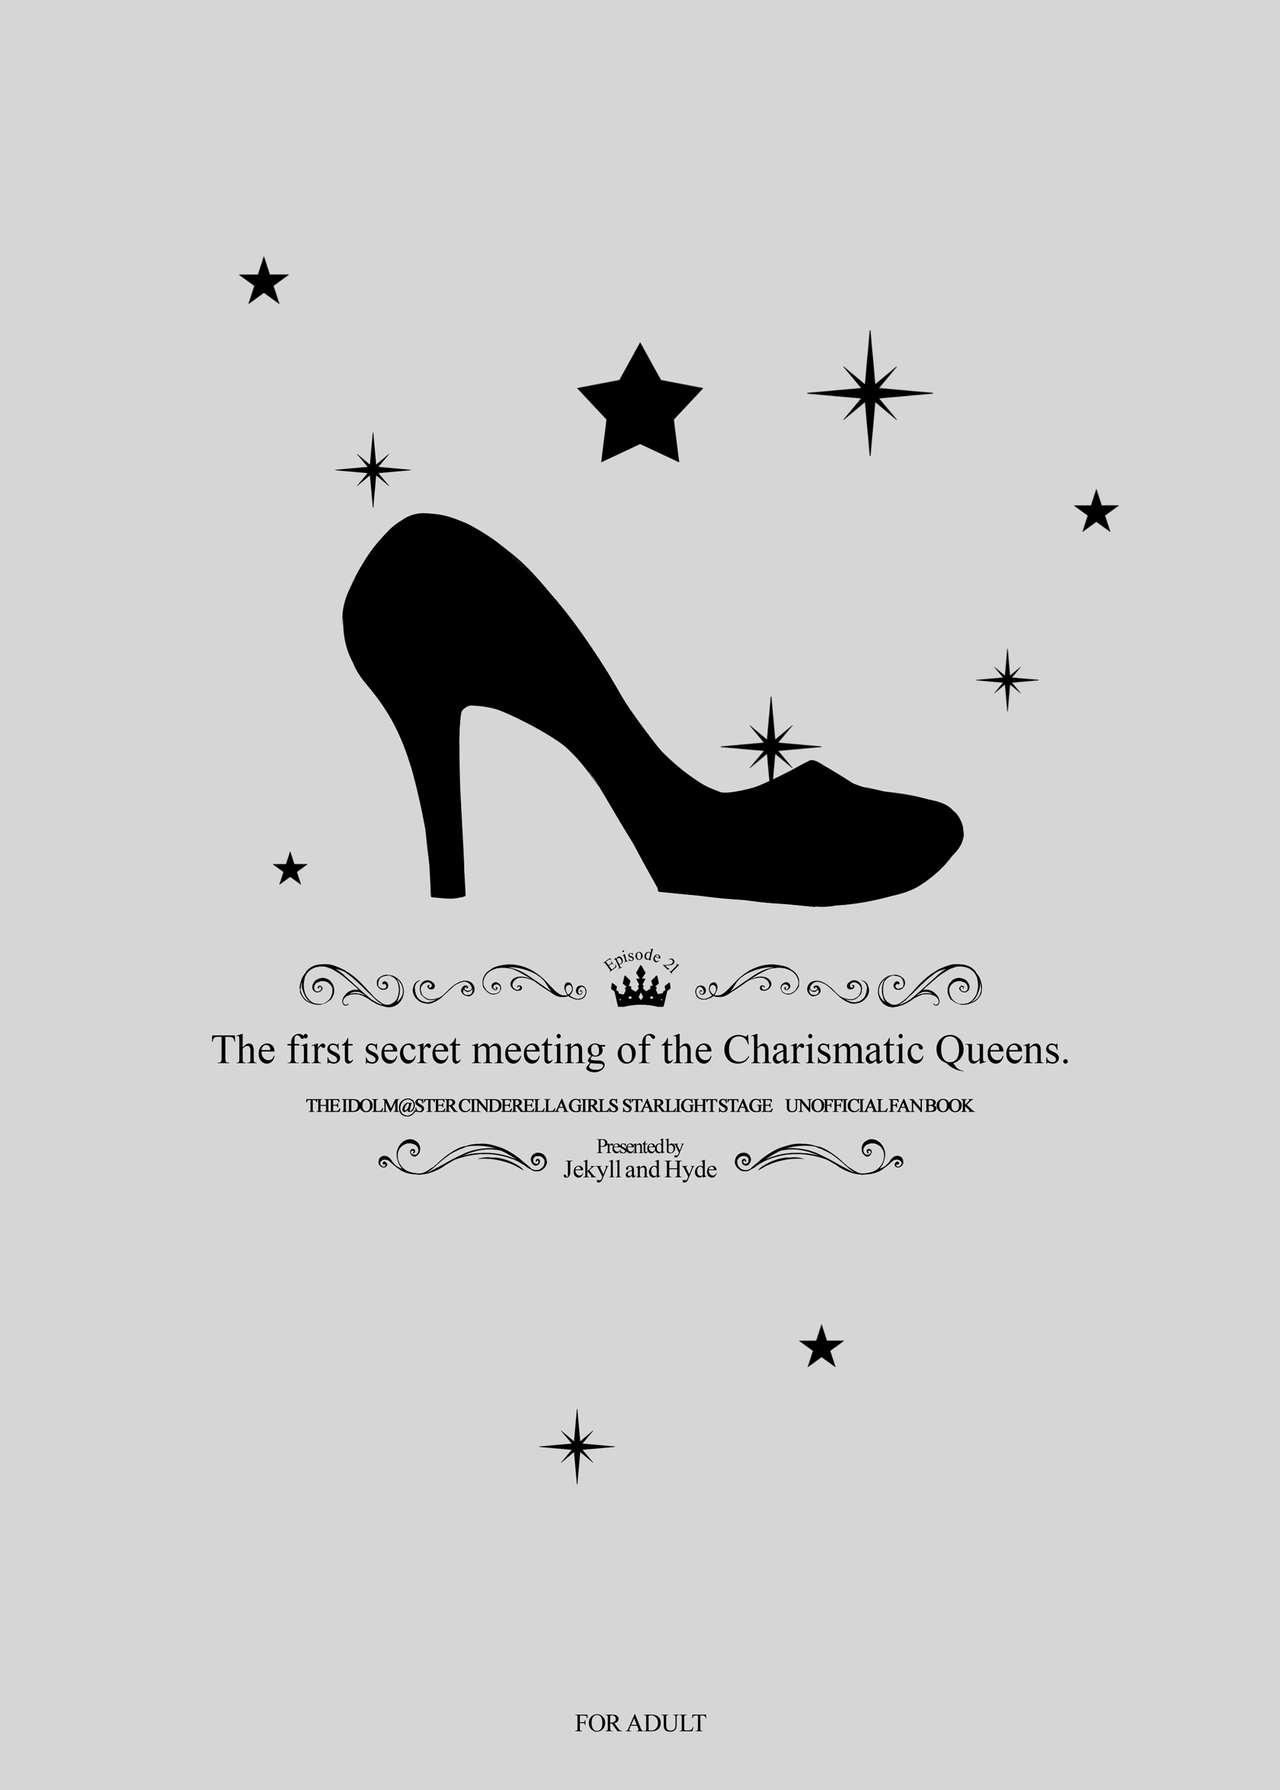 The first secret meeting of the Charismatic Queens. 31